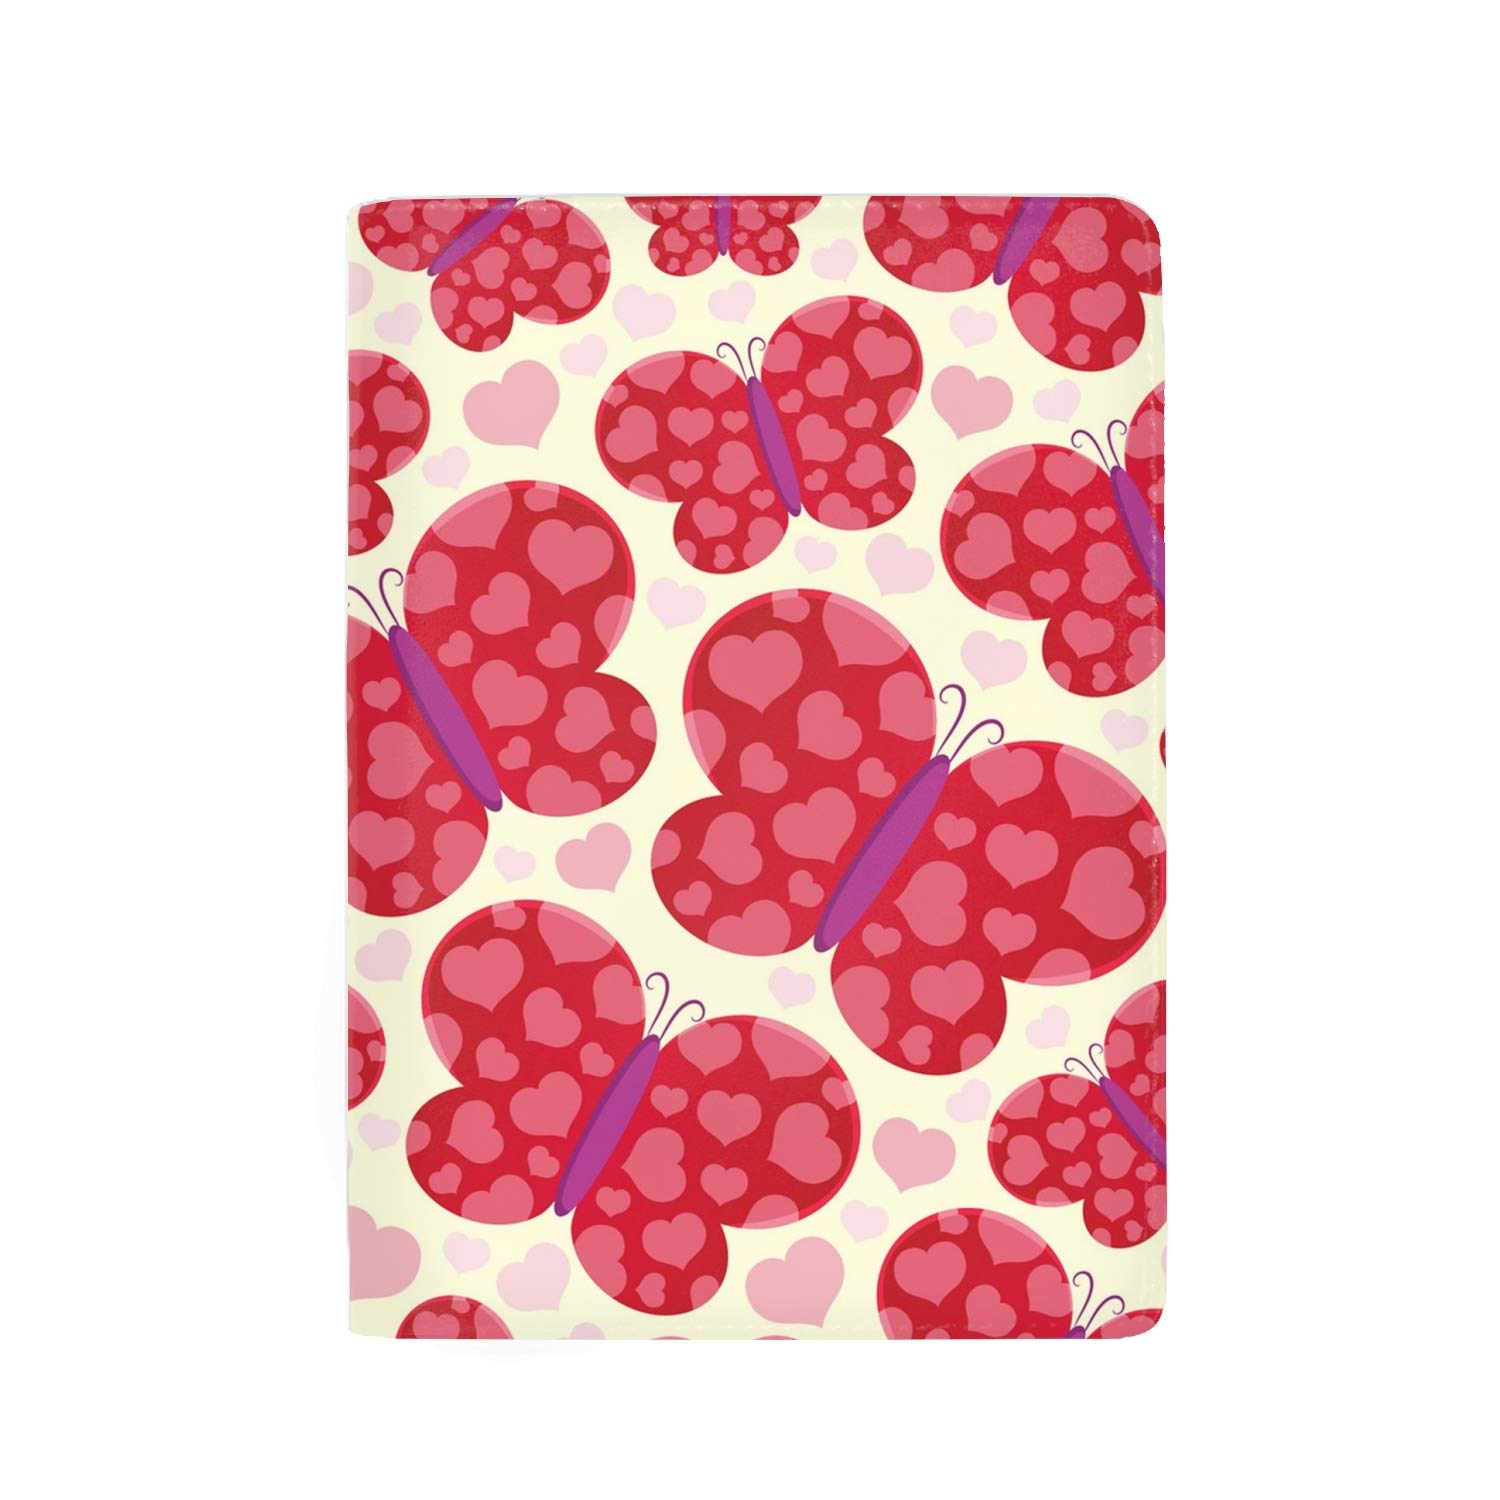 Colorful Leaves Pattern Protective Premium Leather RFID Blocking Wallet Case for Passport Passport Holder Case